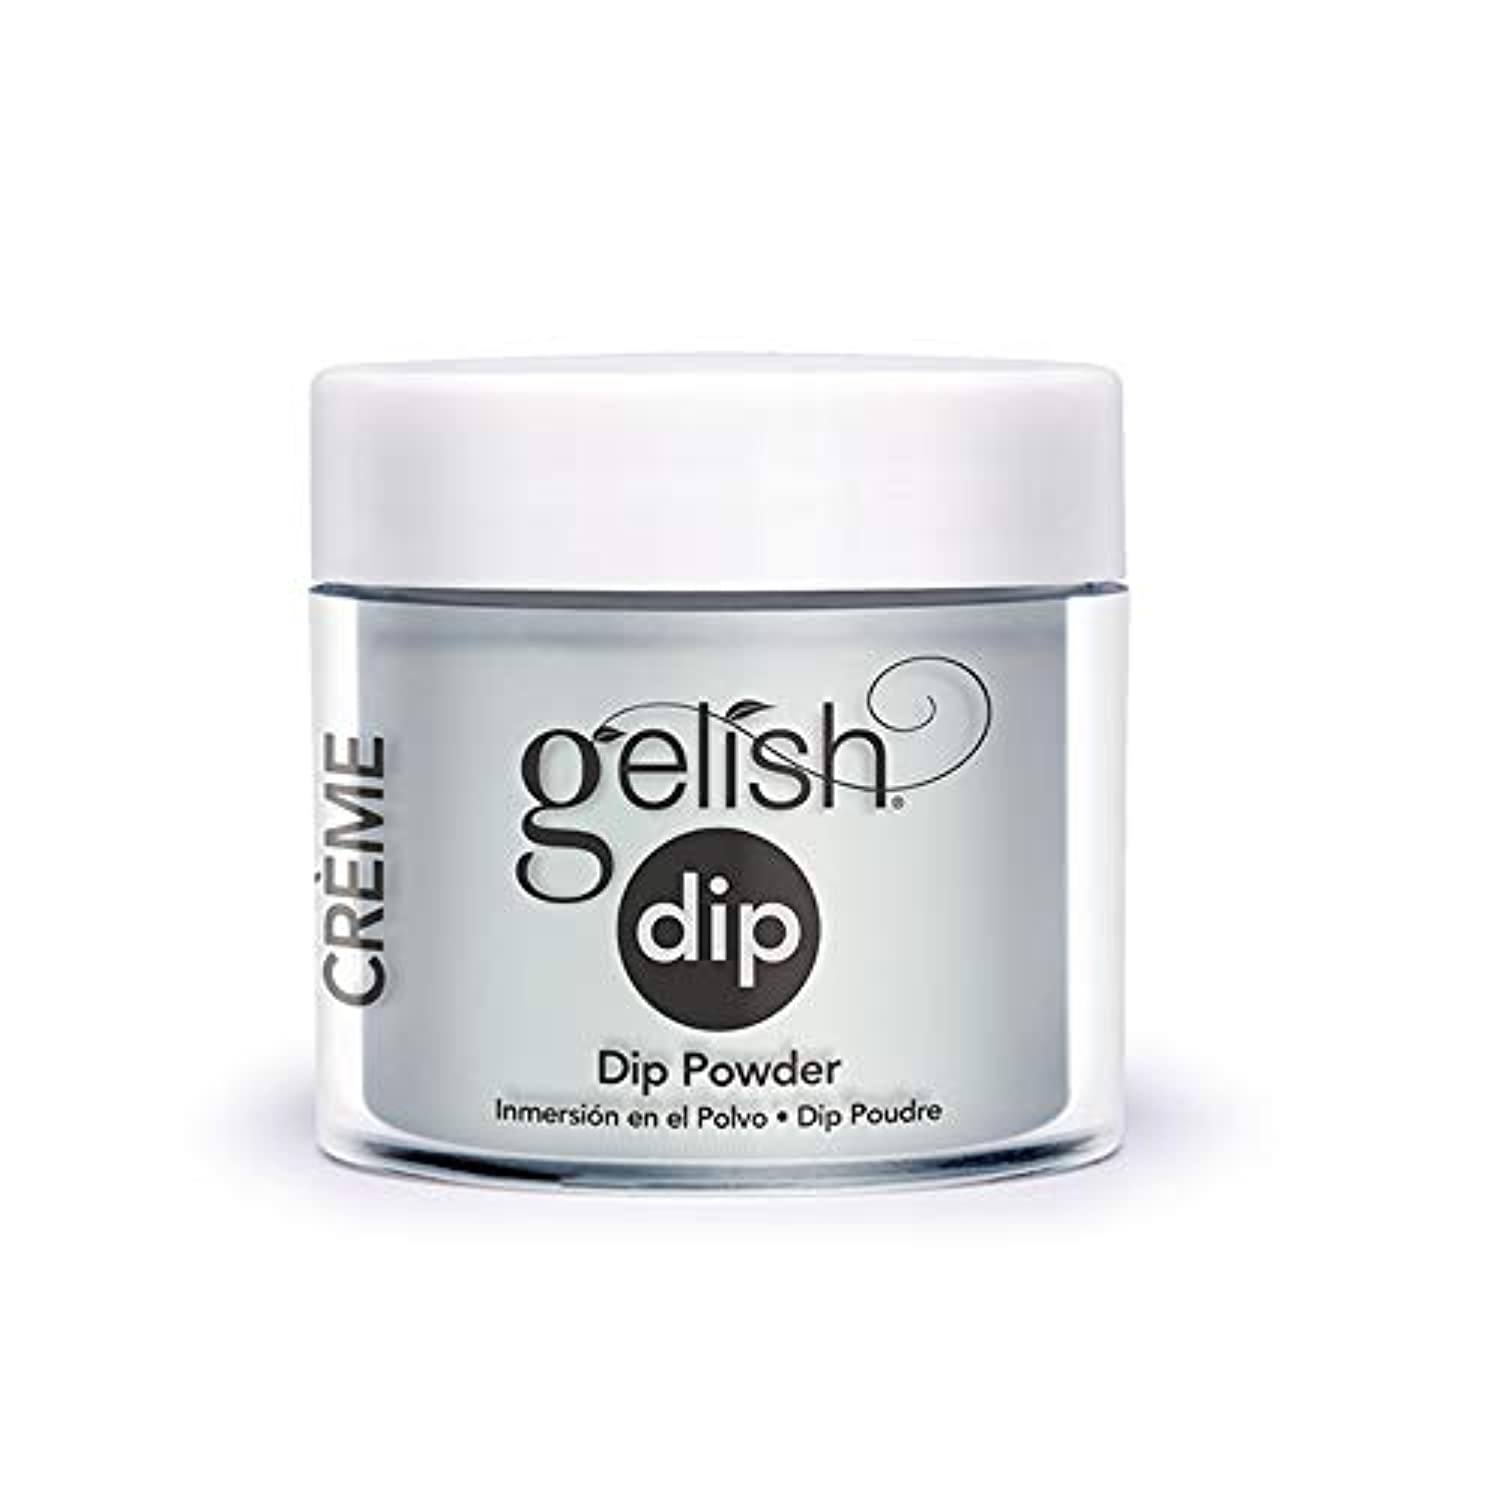 Harmony Gelish - Acrylic Dip Powder - Sea Foam - 23g / 0.8oz